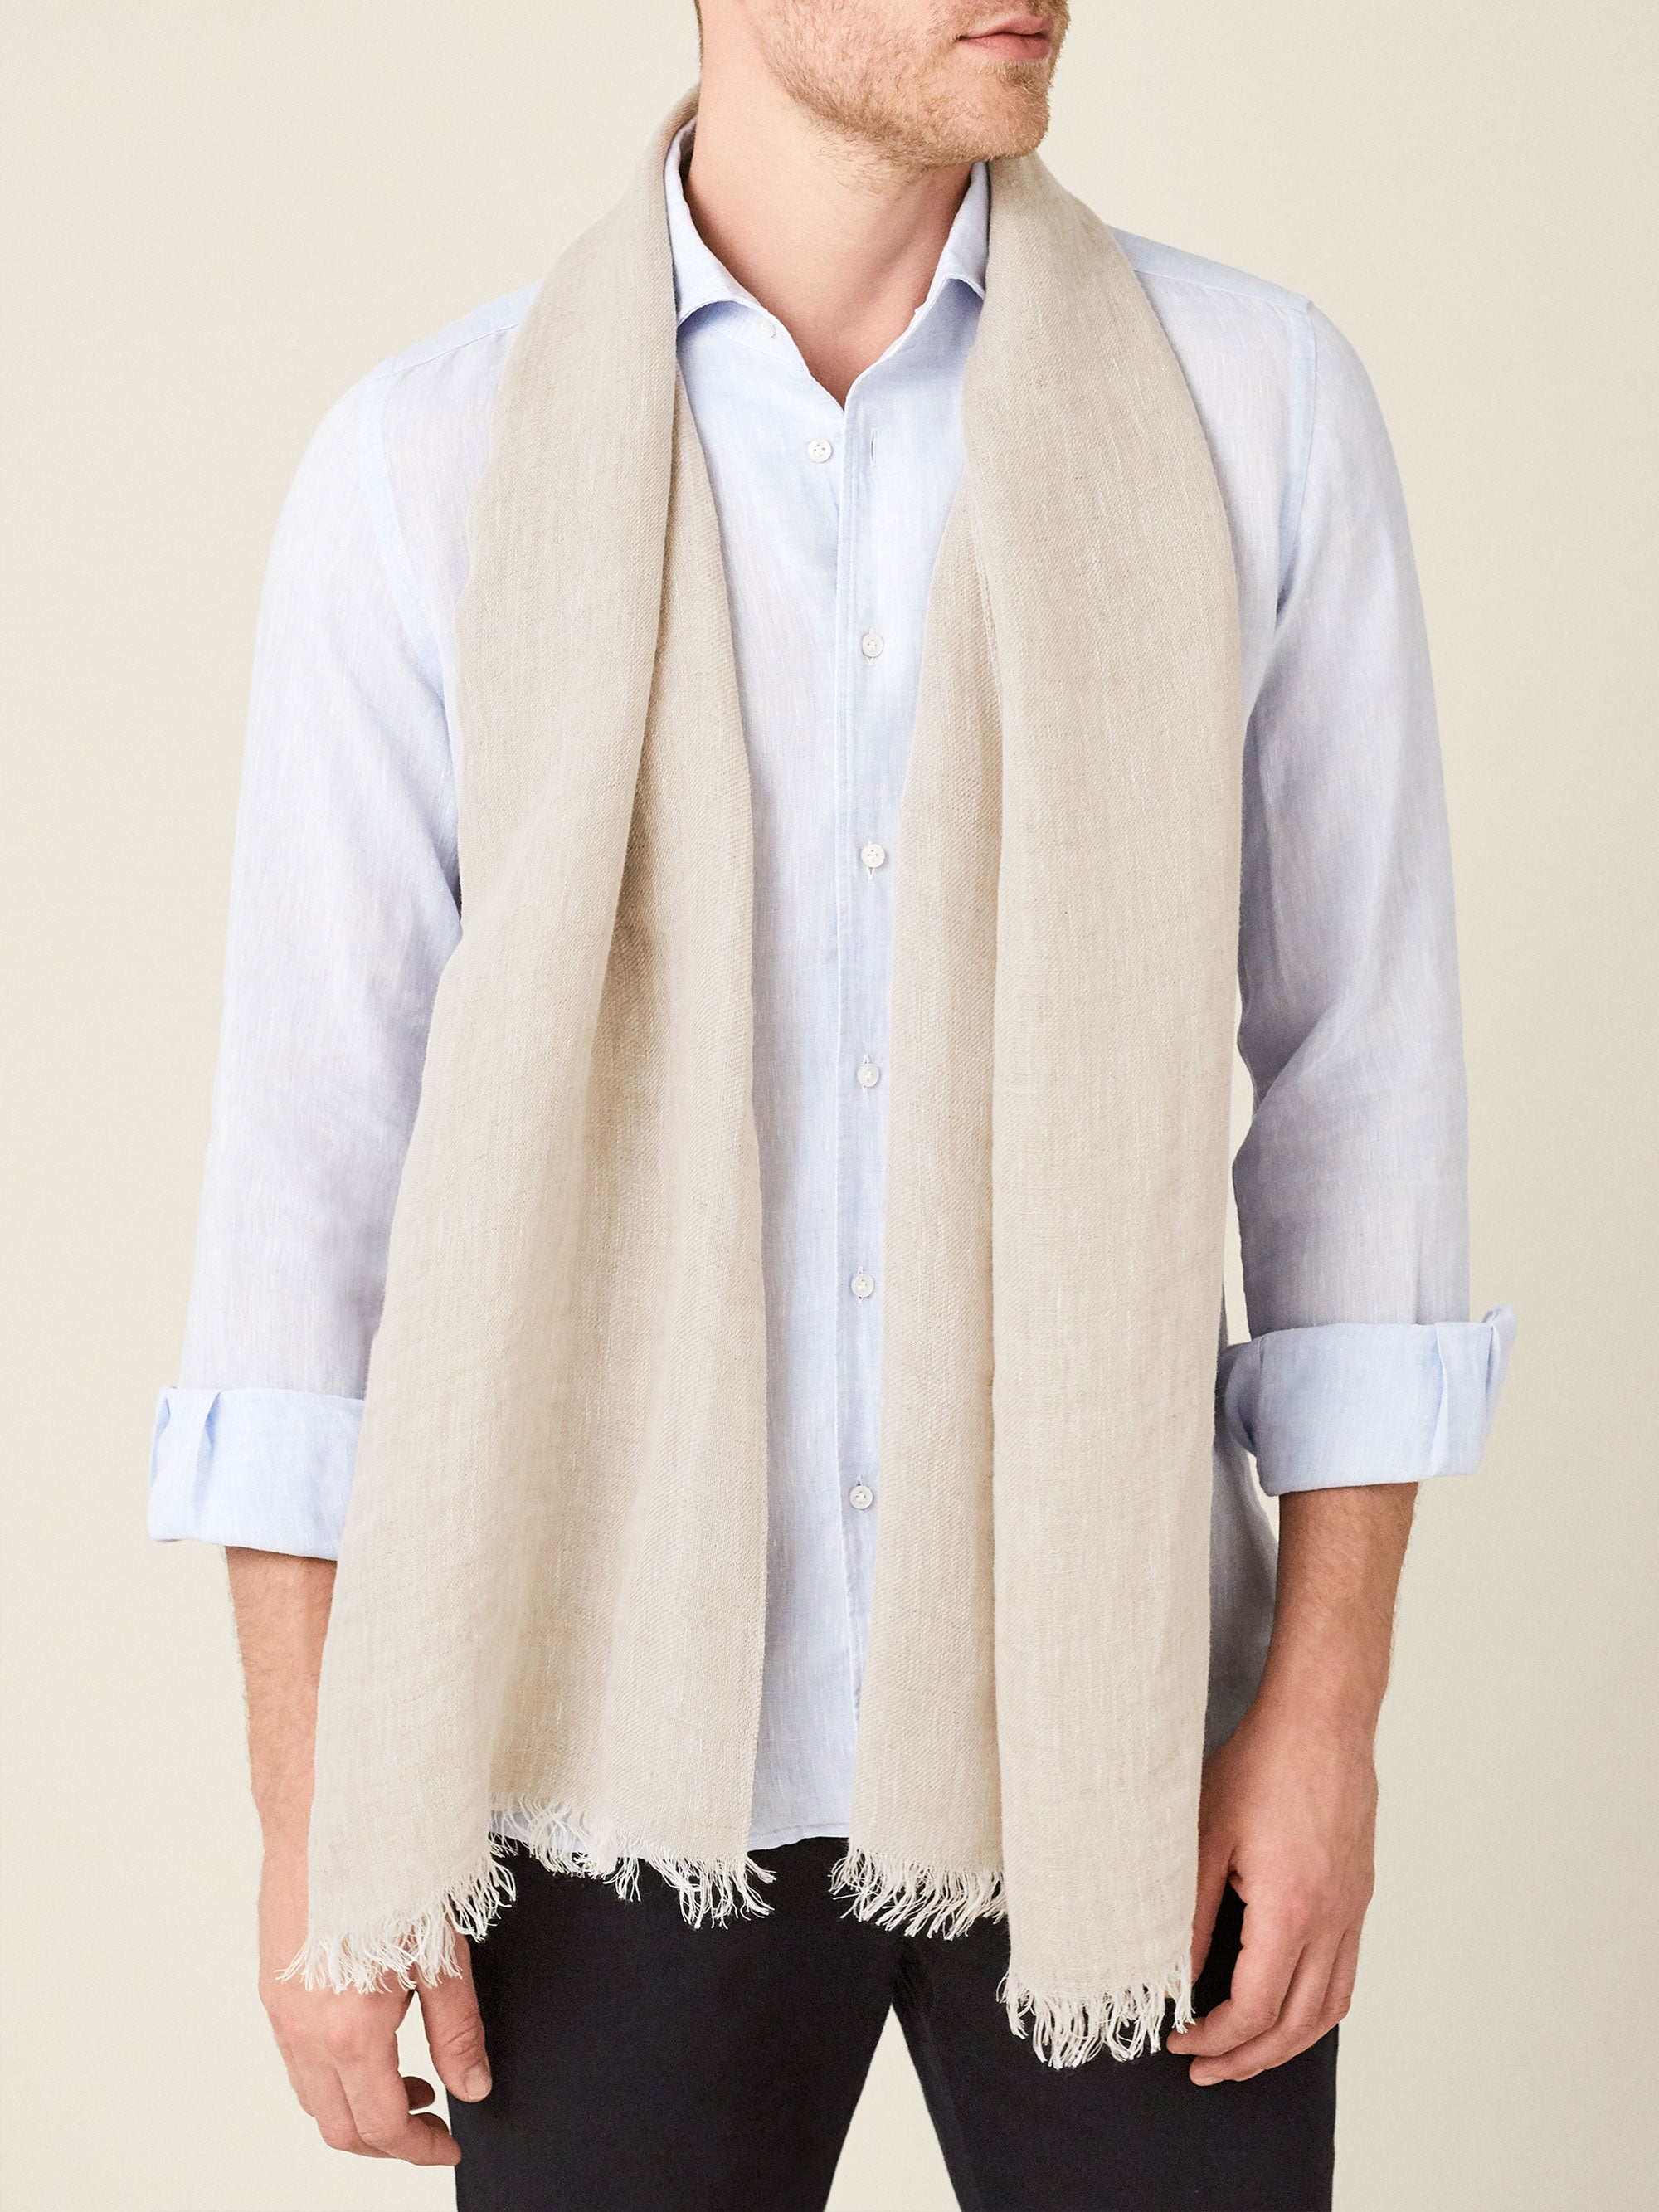 Luca Faloni Sand Beige Linen Scarf Made in Italy